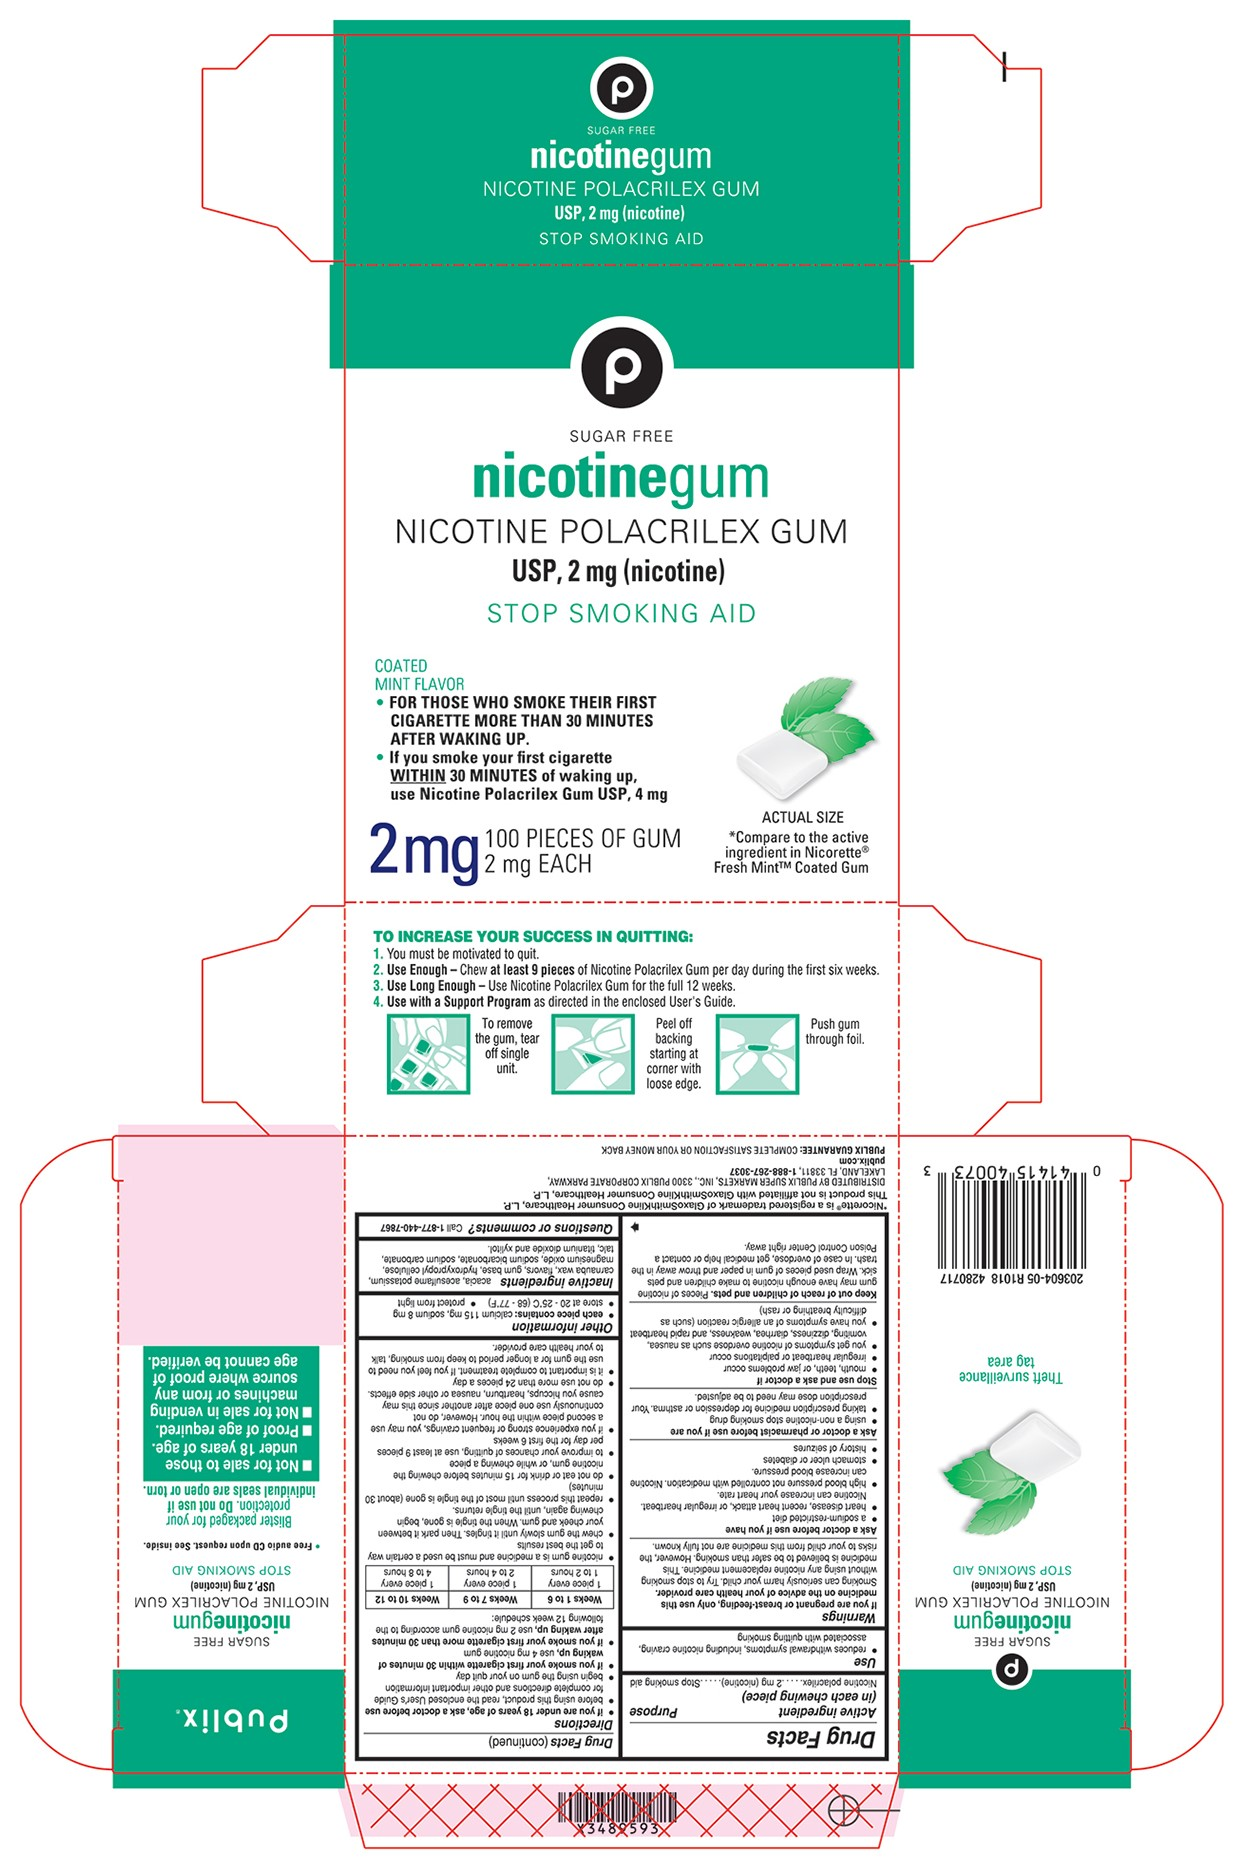 2 mg coated mint 100 count